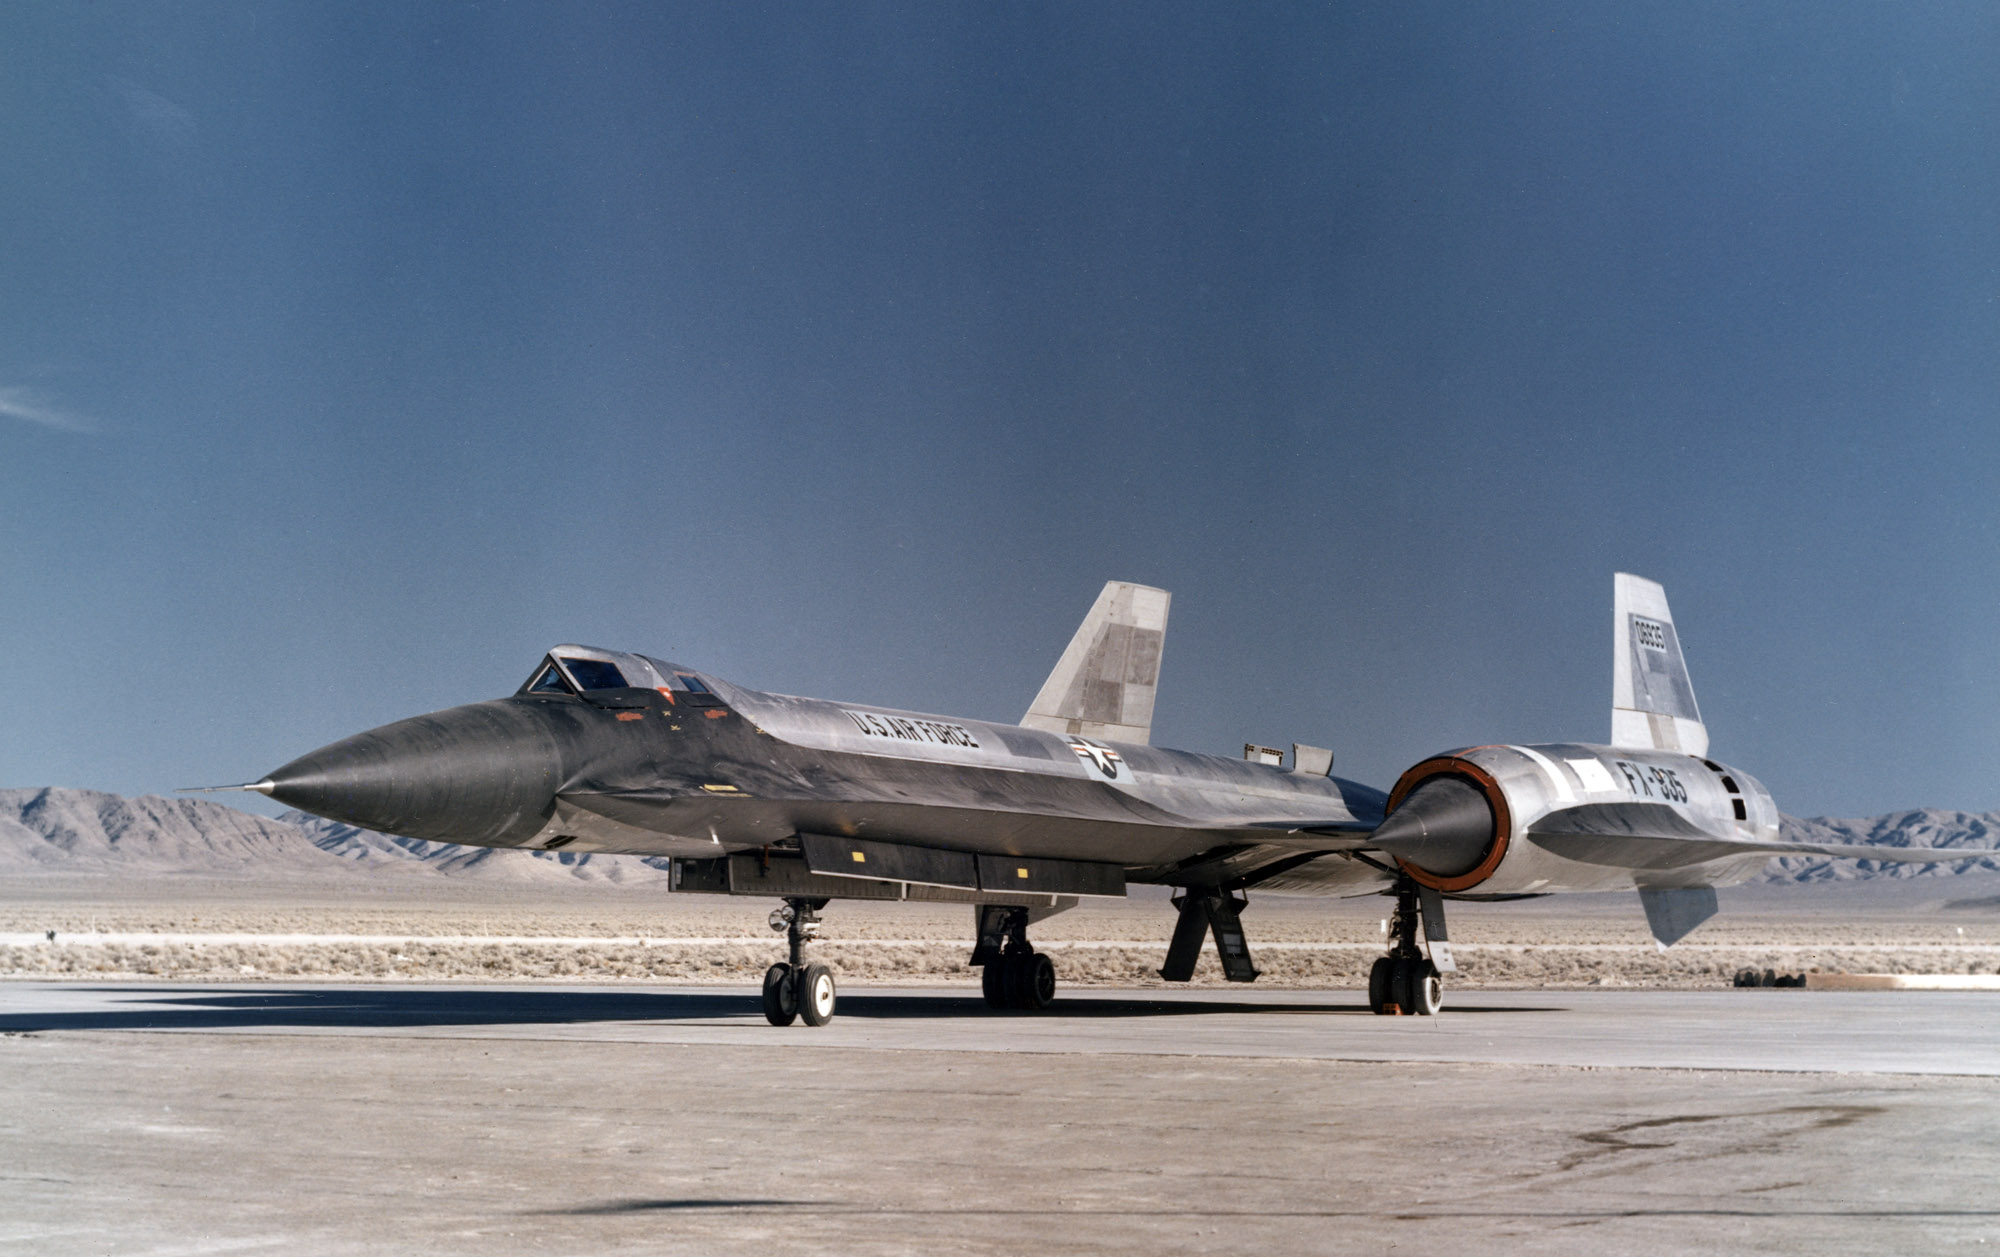 The second of three Lockheed YF-12A's parked on the ramp after a recent test mission.